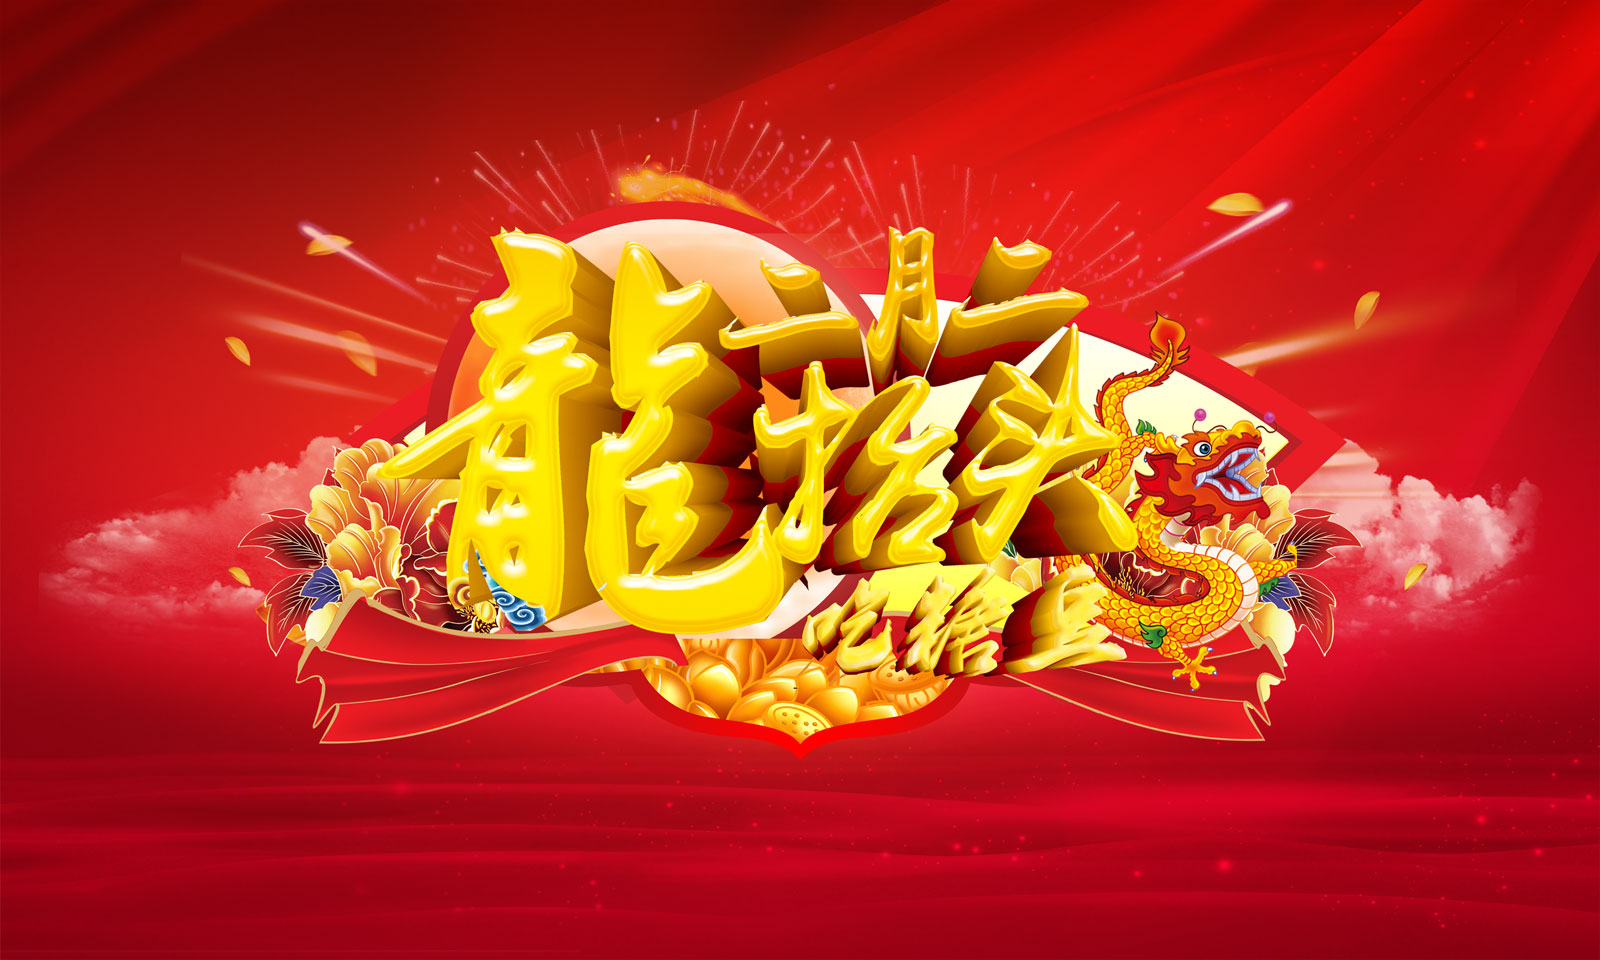 February two loong rise - China PSD File Free Download